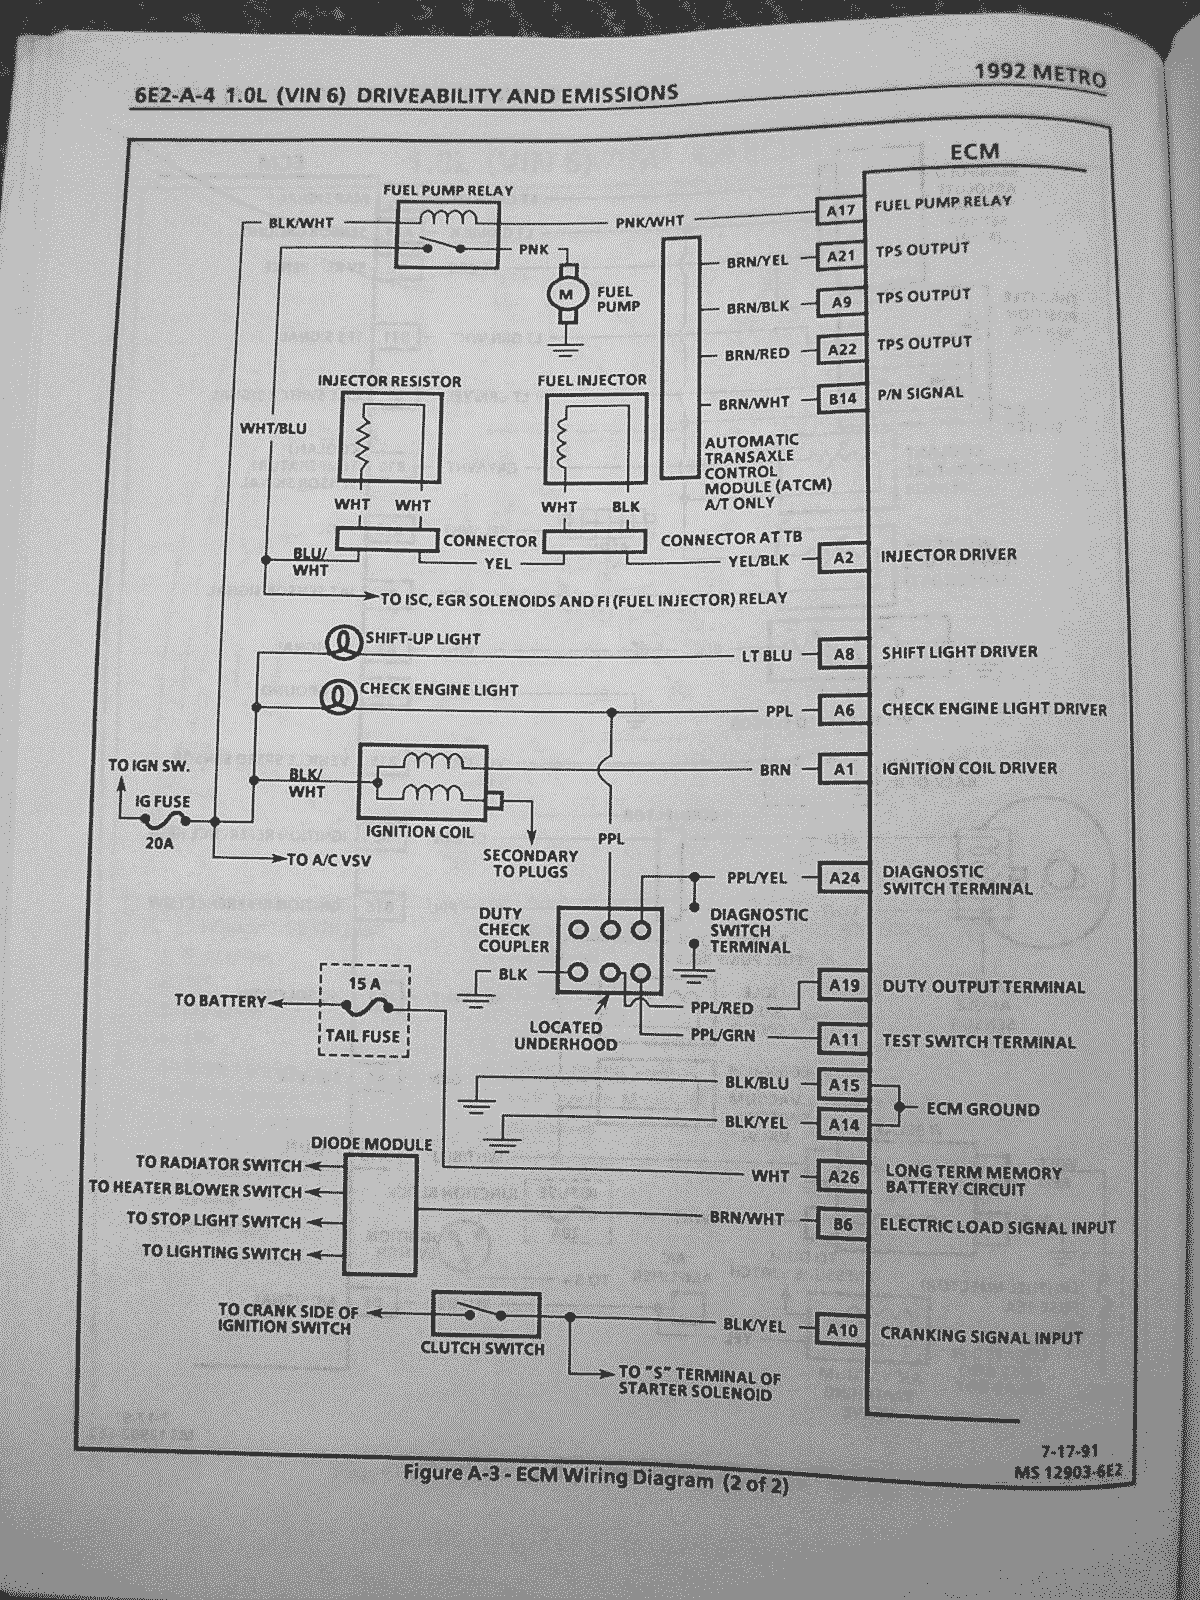 6e2 a 4 geo metro and suzuki swift wiring diagrams metroxfi com suzuki swift wiring diagram at alyssarenee.co